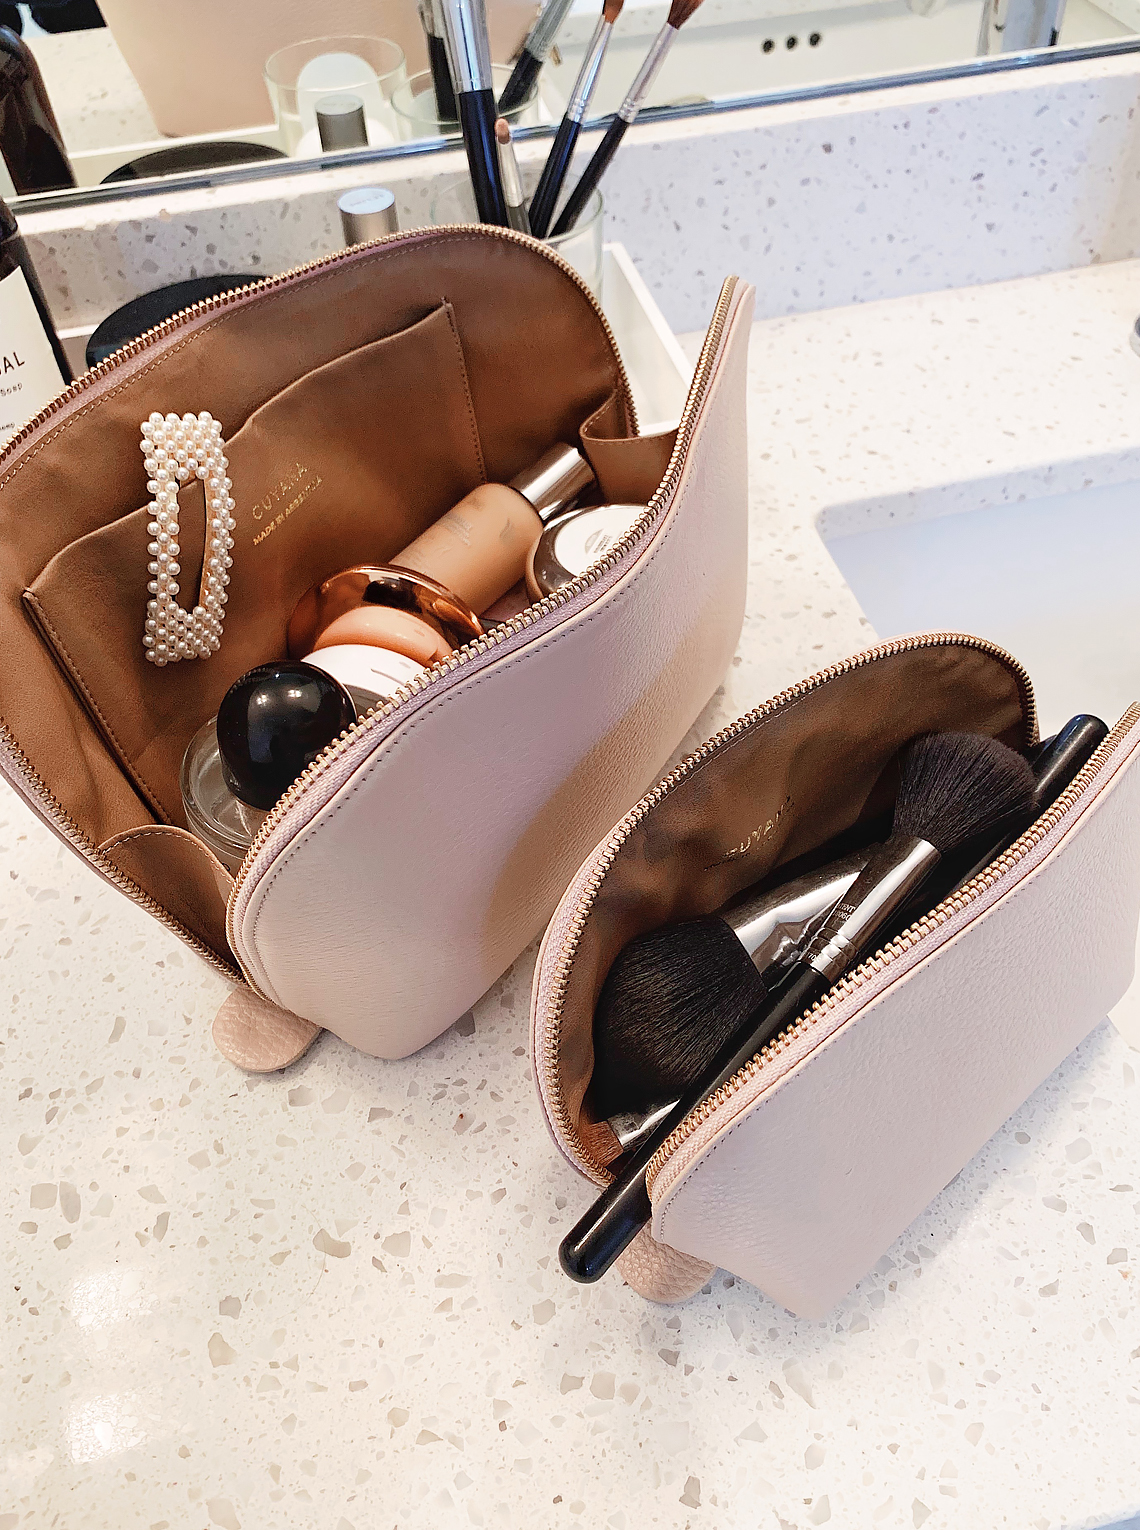 cuyana travel makeup bags